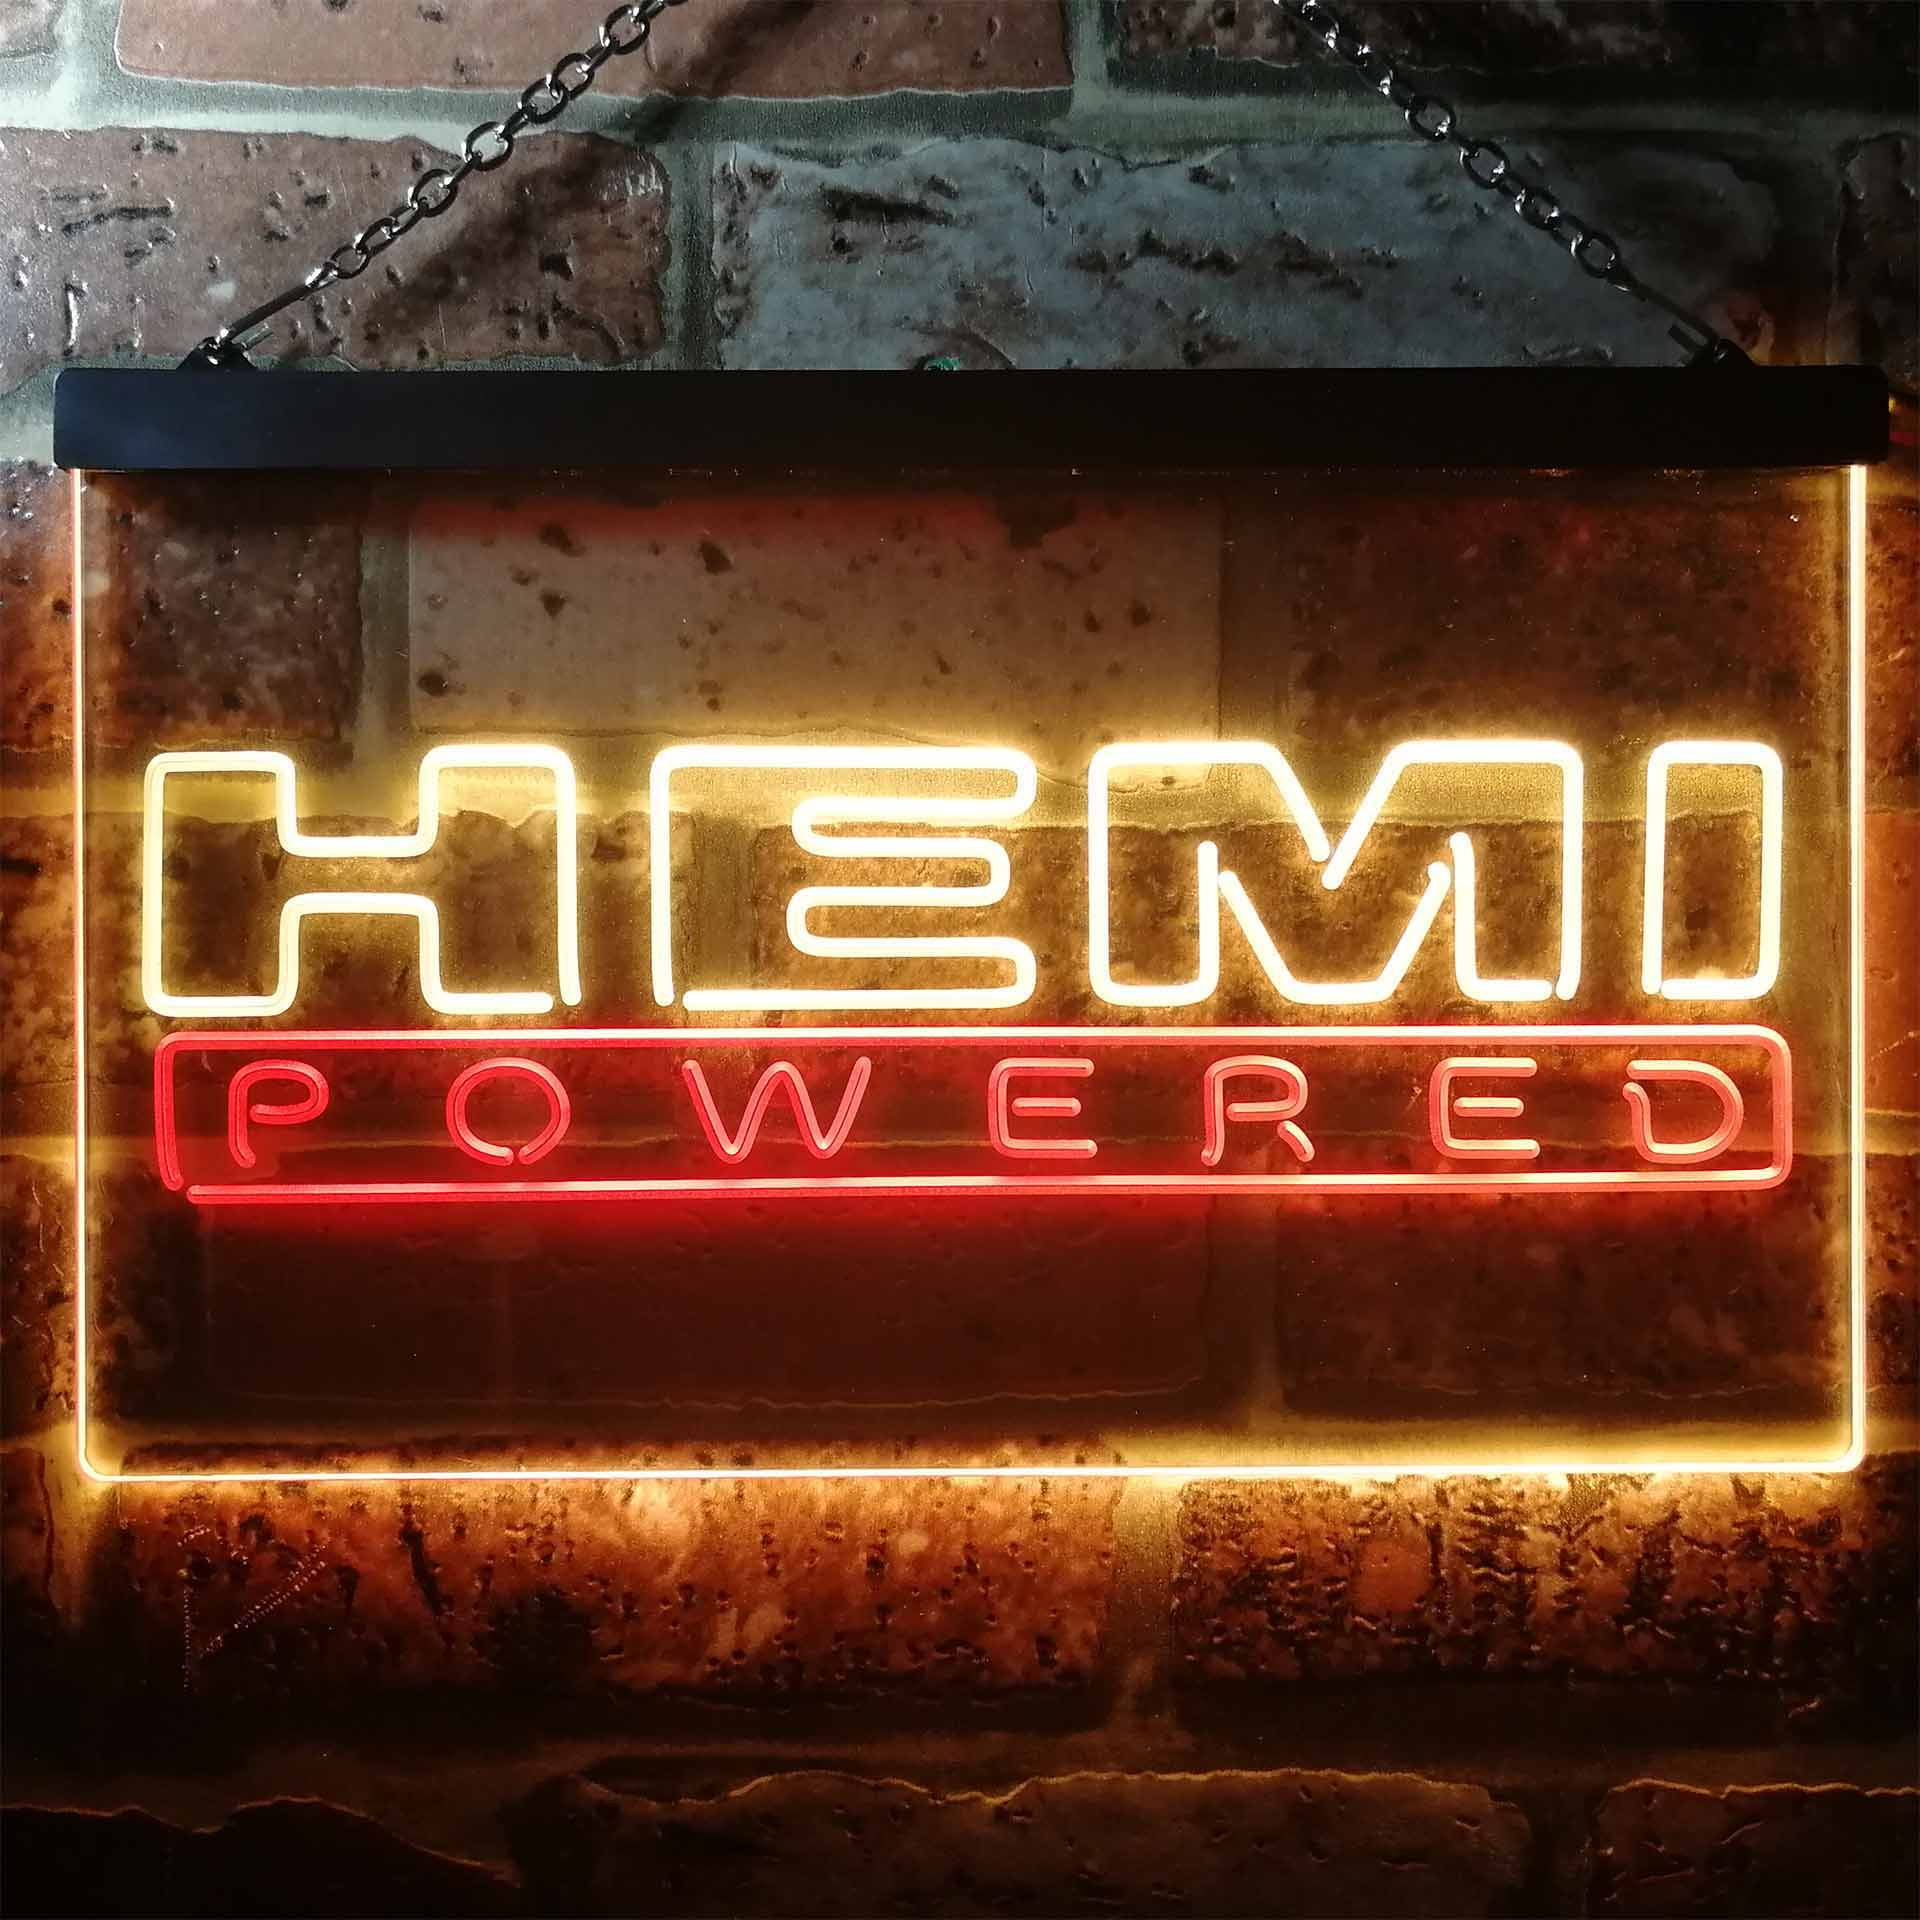 Hemi Powered Car Dual Color LED Neon Sign ProLedSign